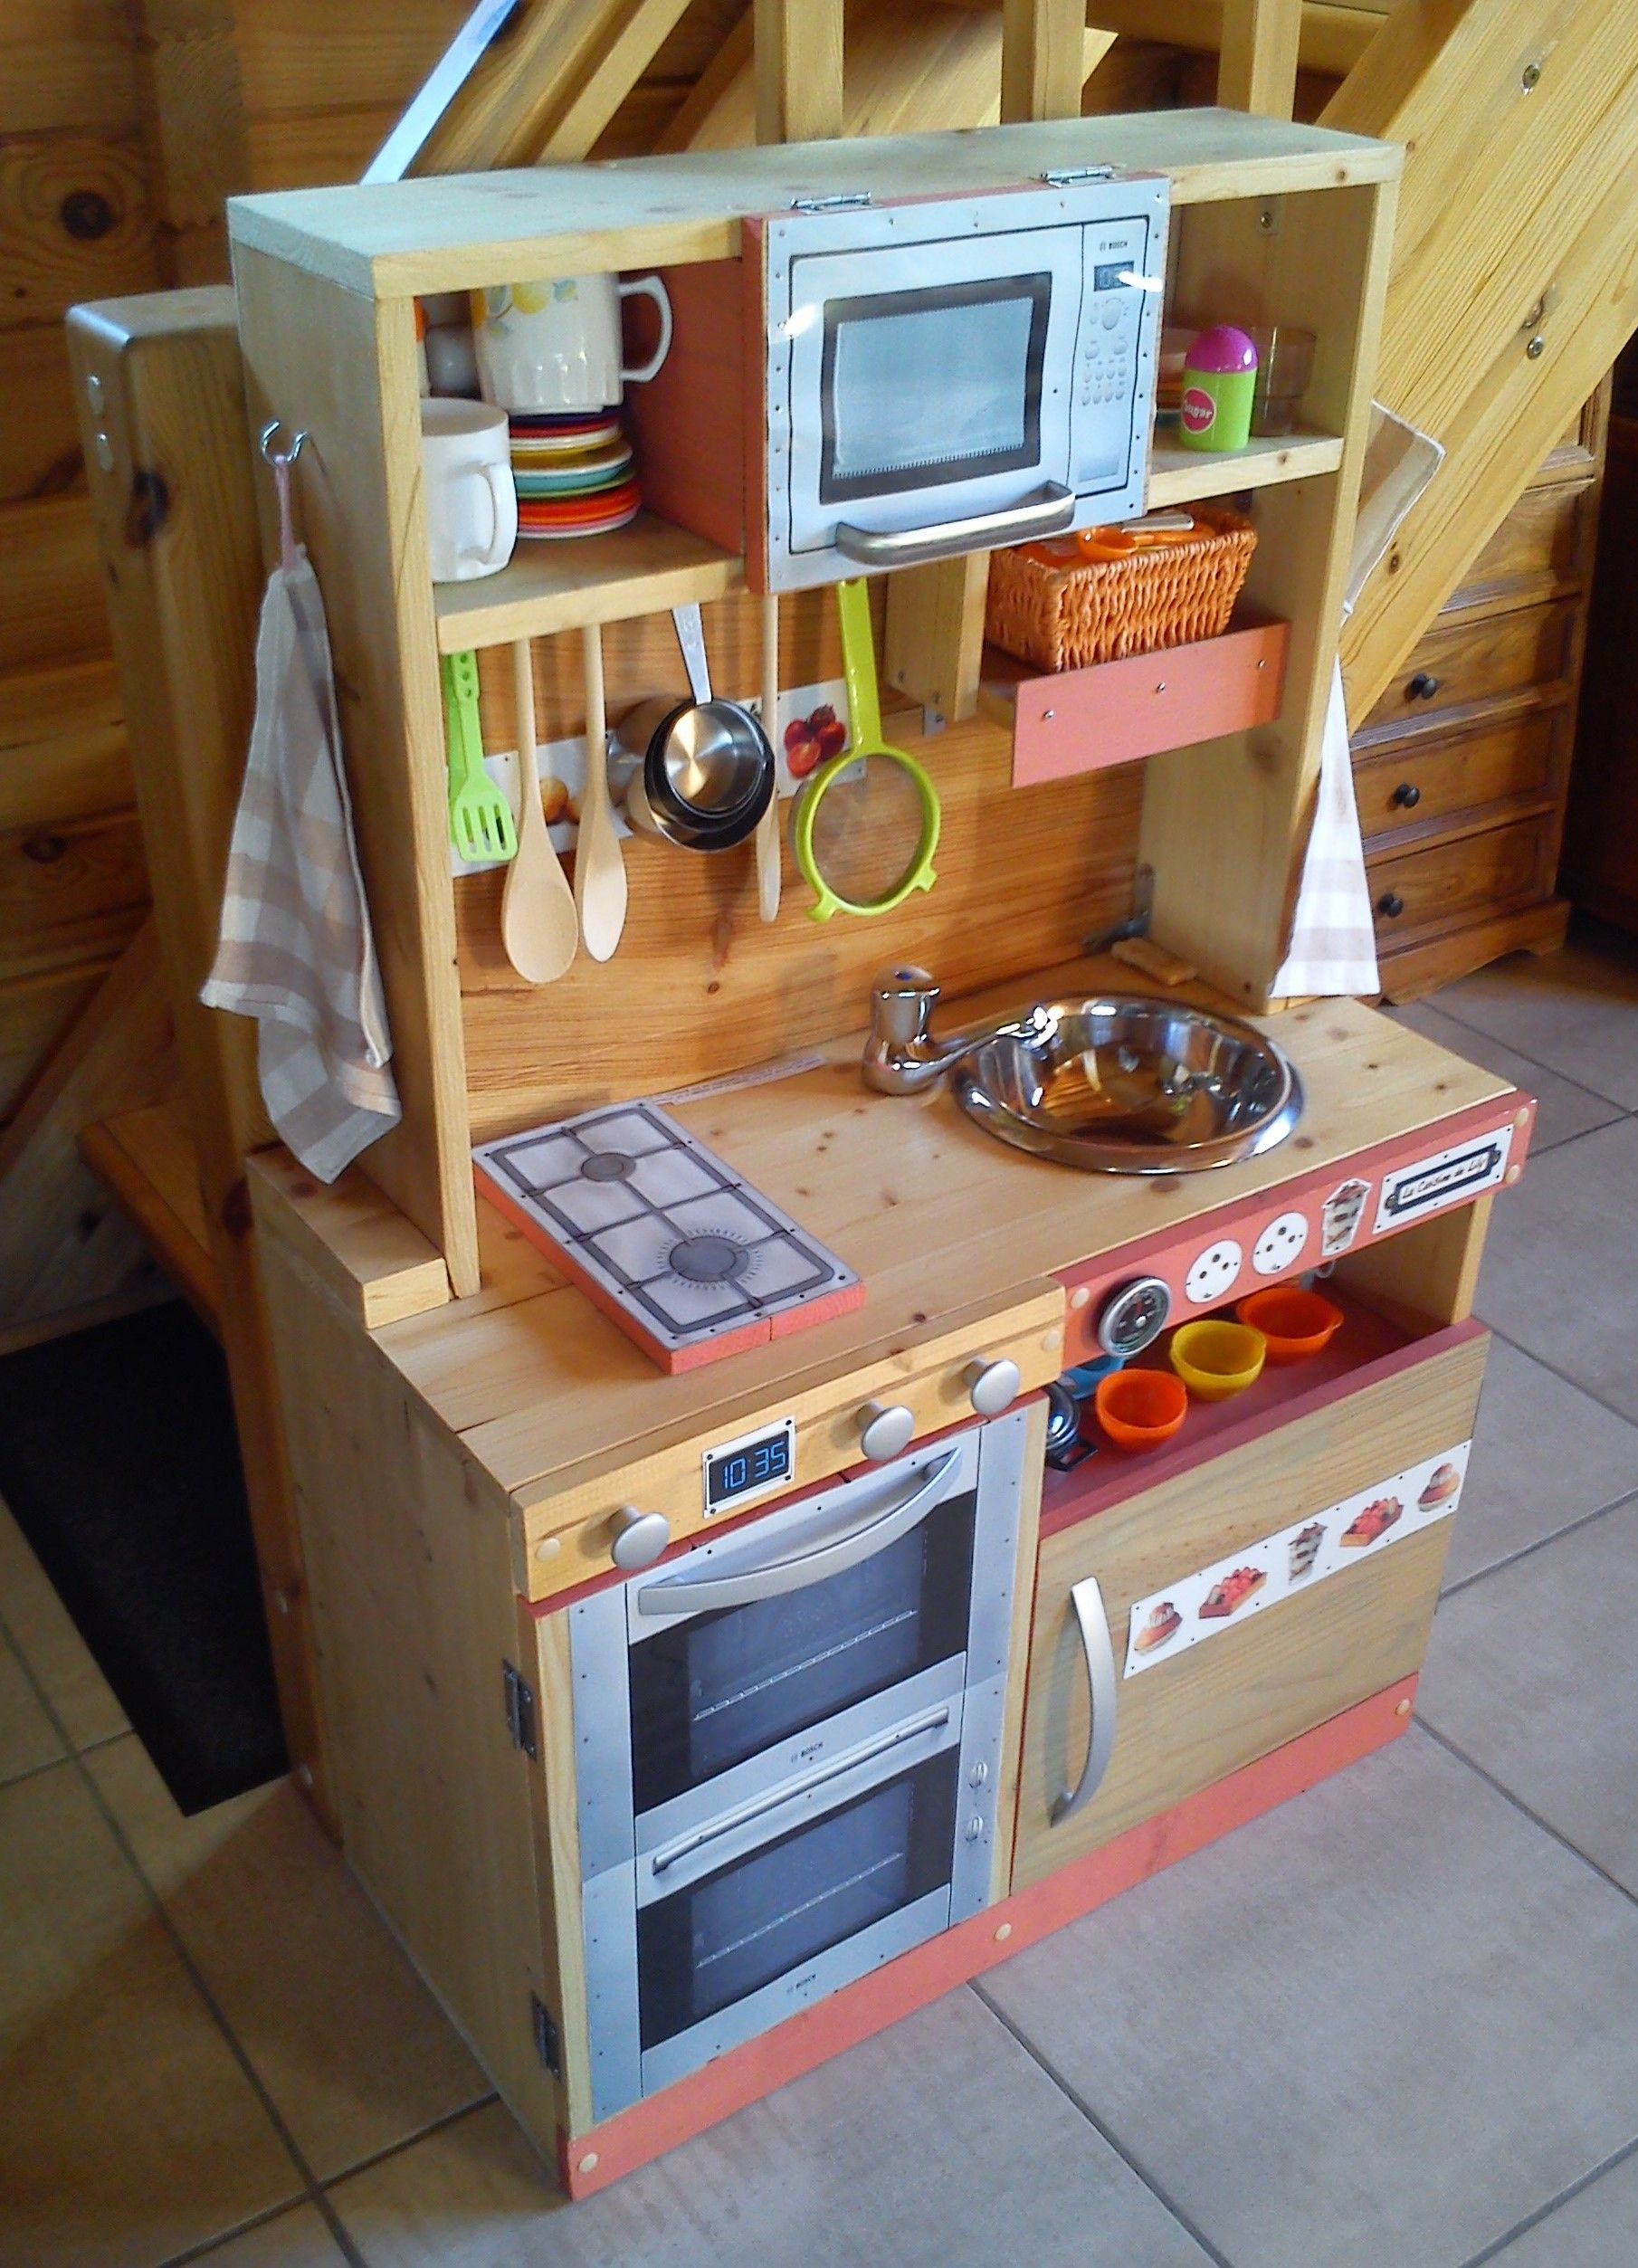 cuisini re en bois pour enfant fait maison diy cuisines enfants pinterest cuisine enfant. Black Bedroom Furniture Sets. Home Design Ideas